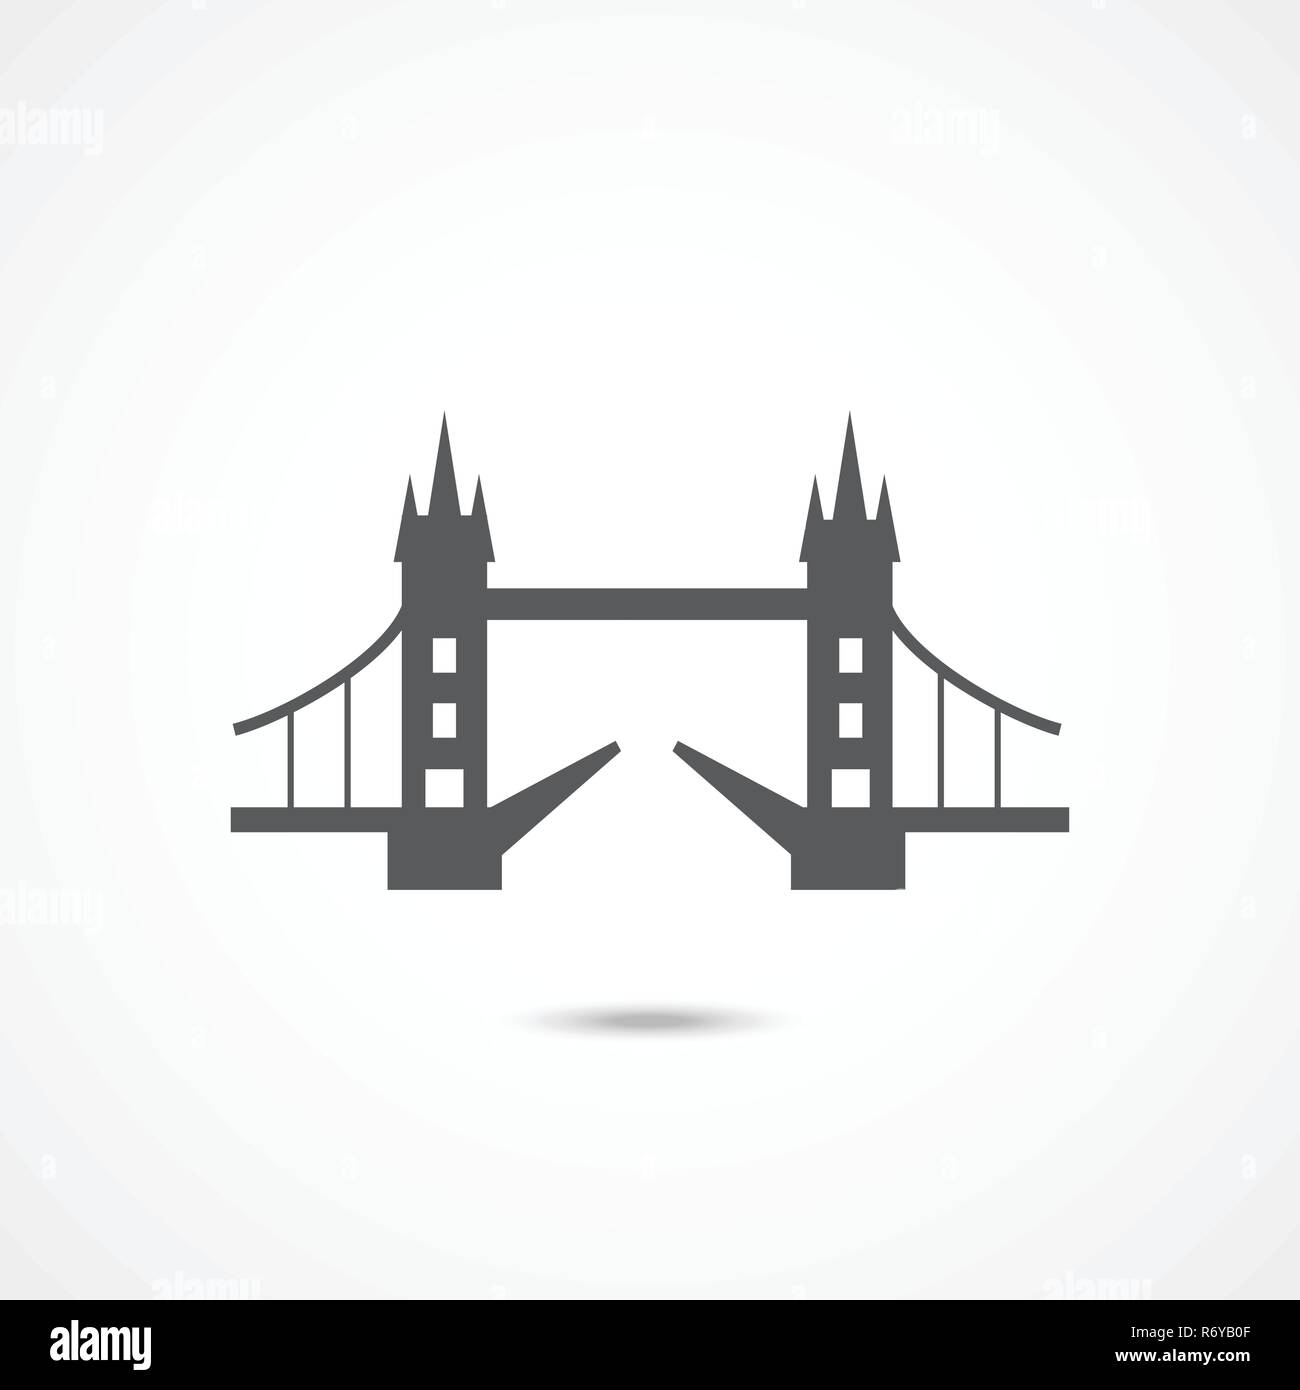 London Tower Bridge icon - Stock Vector